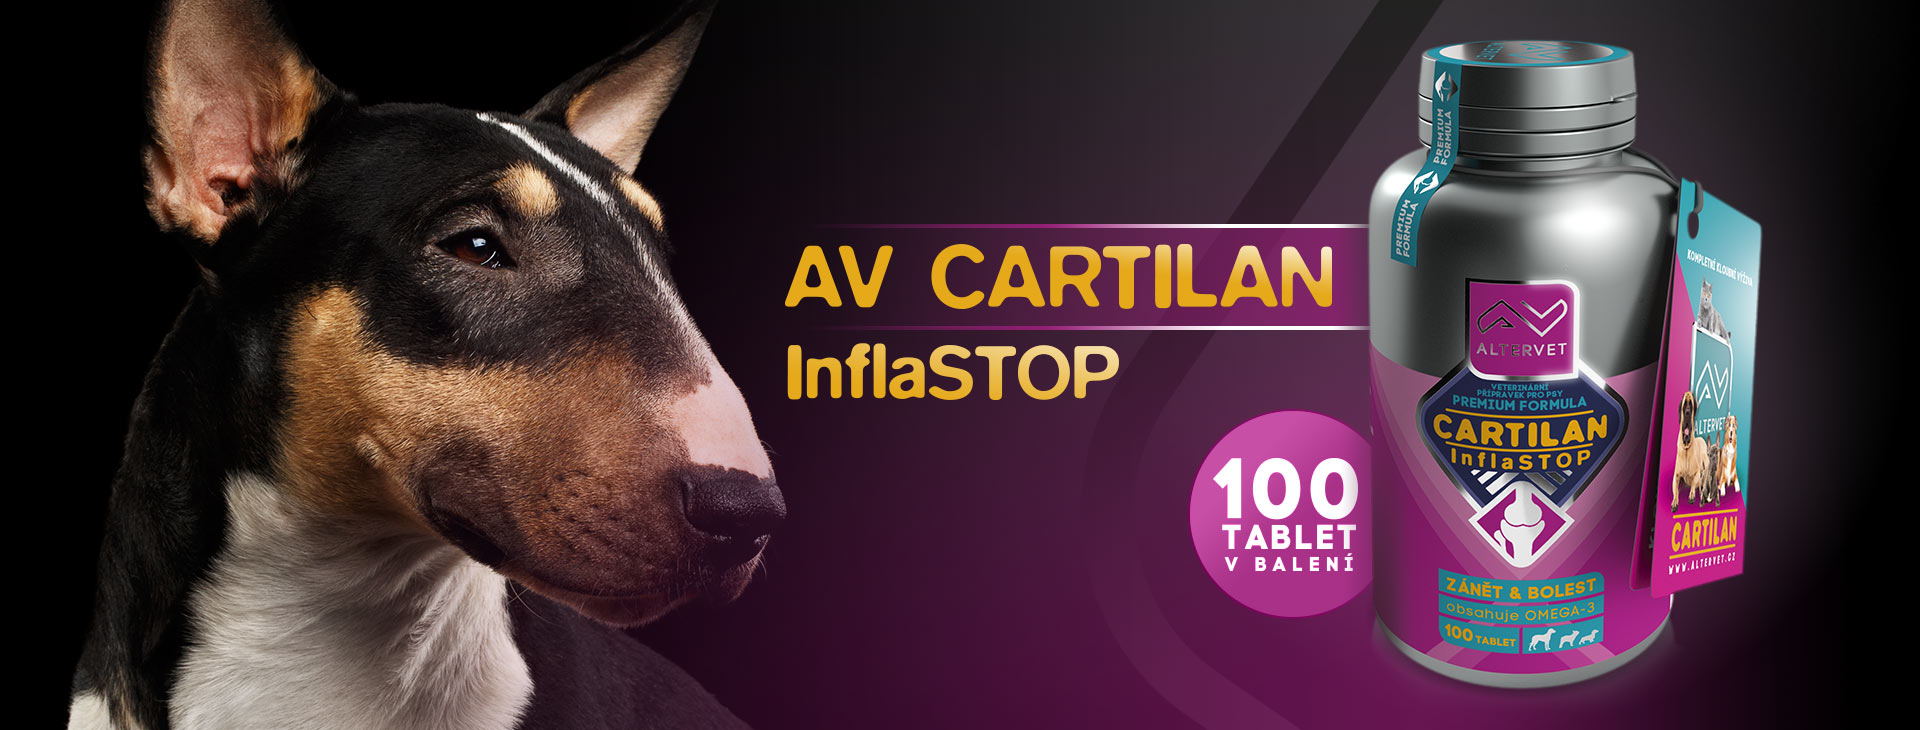 CARTILAN InflaSTOP